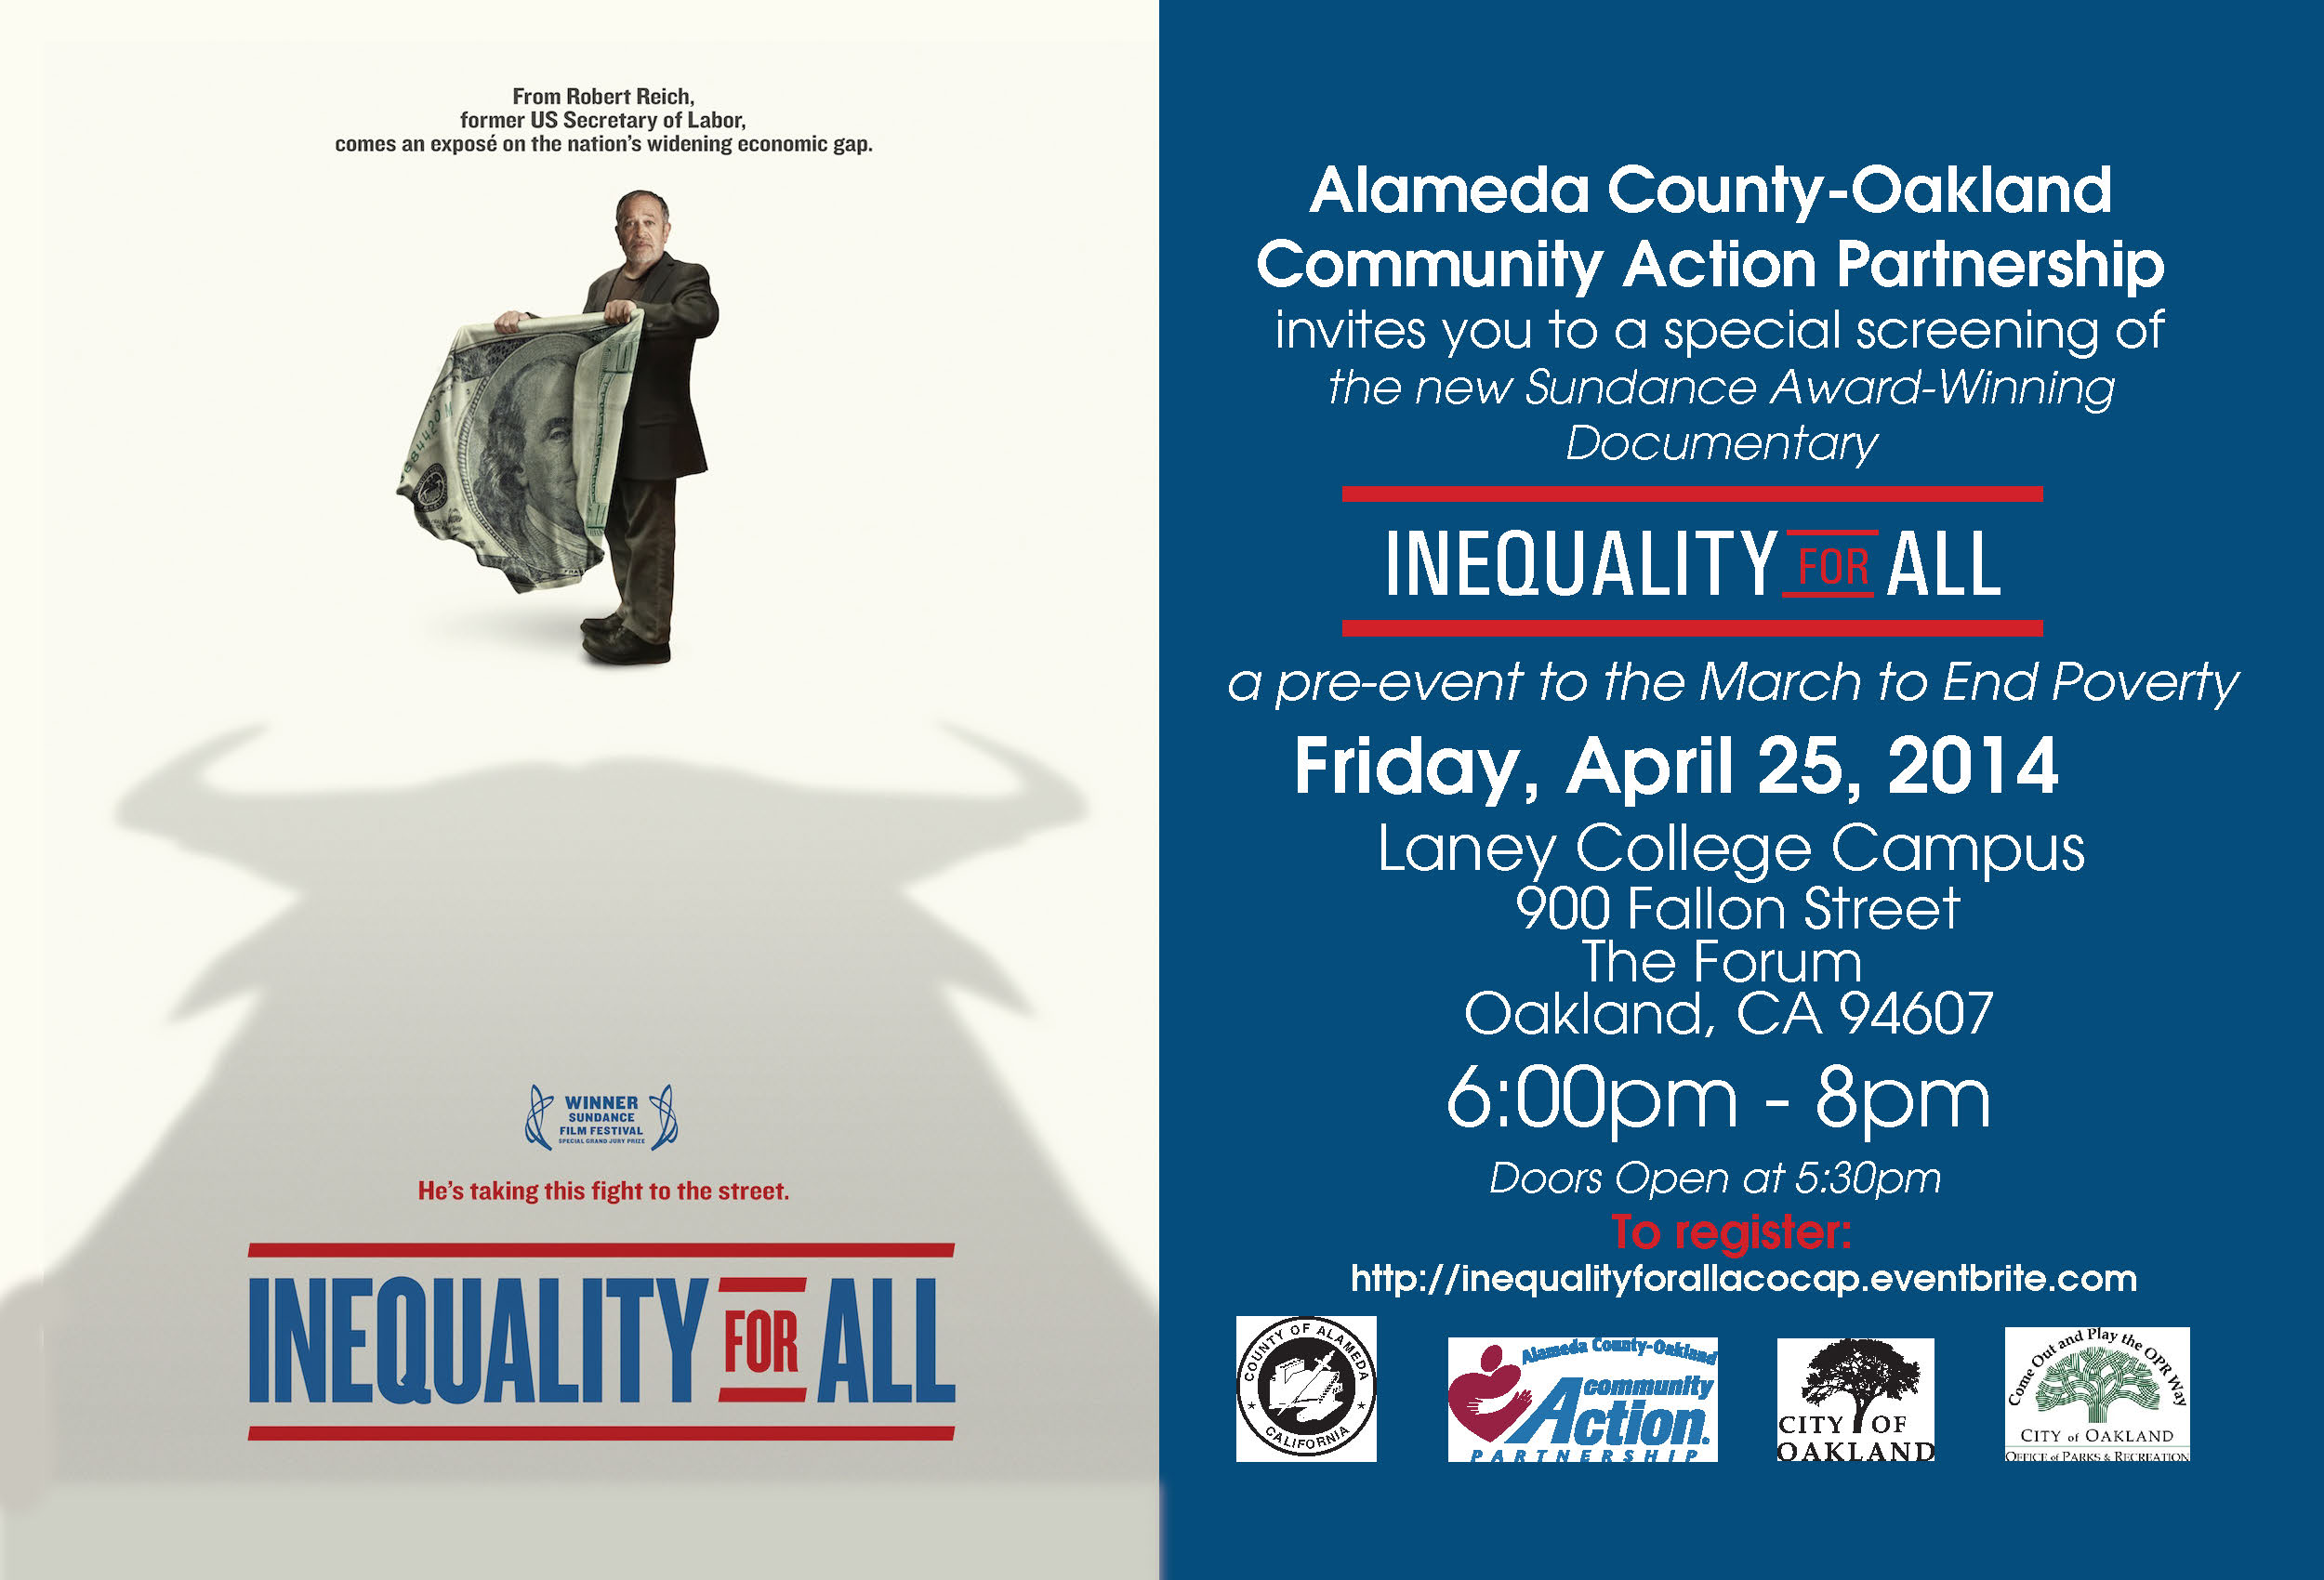 Inequality for All Movie Screening